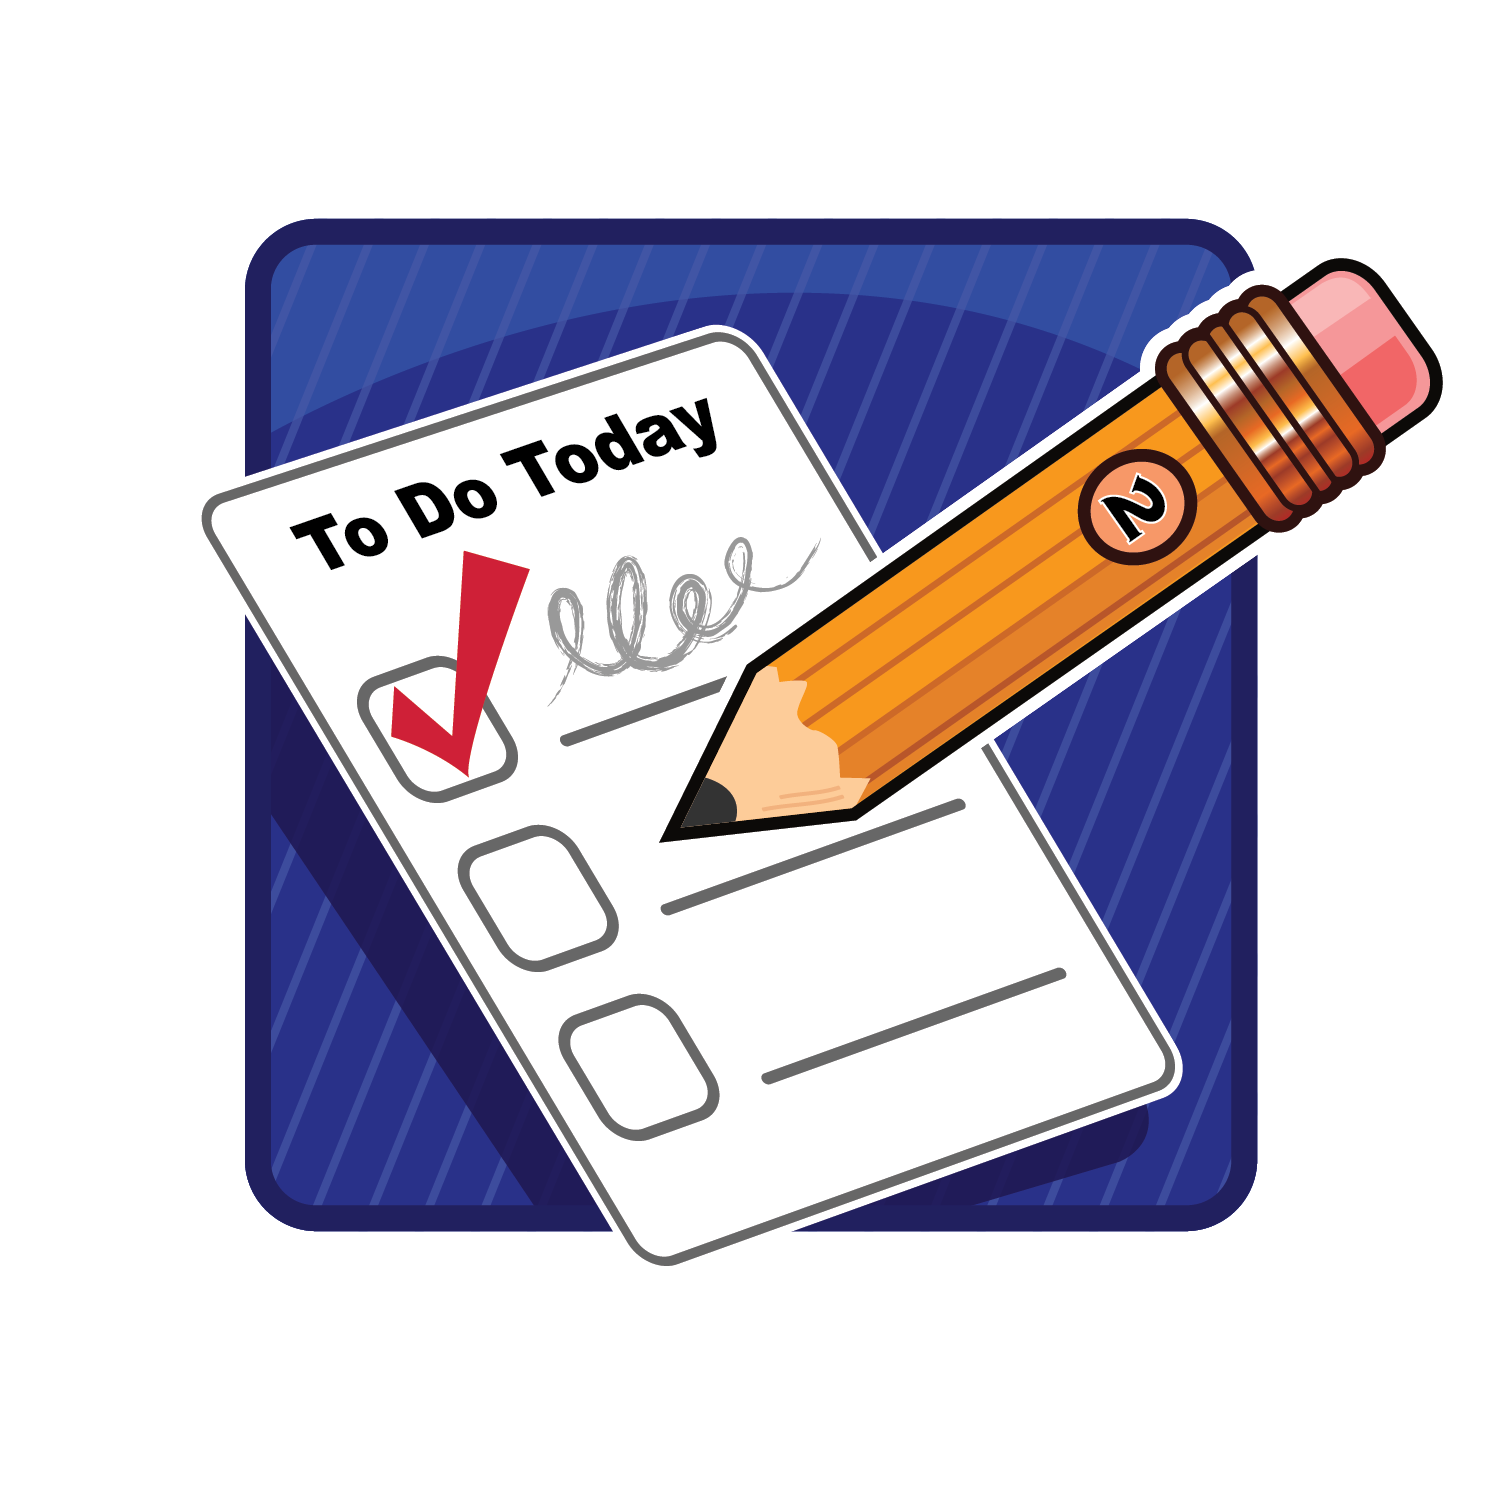 To do list clipart clip royalty free library To Do List Cliparts - The Cliparts clip royalty free library